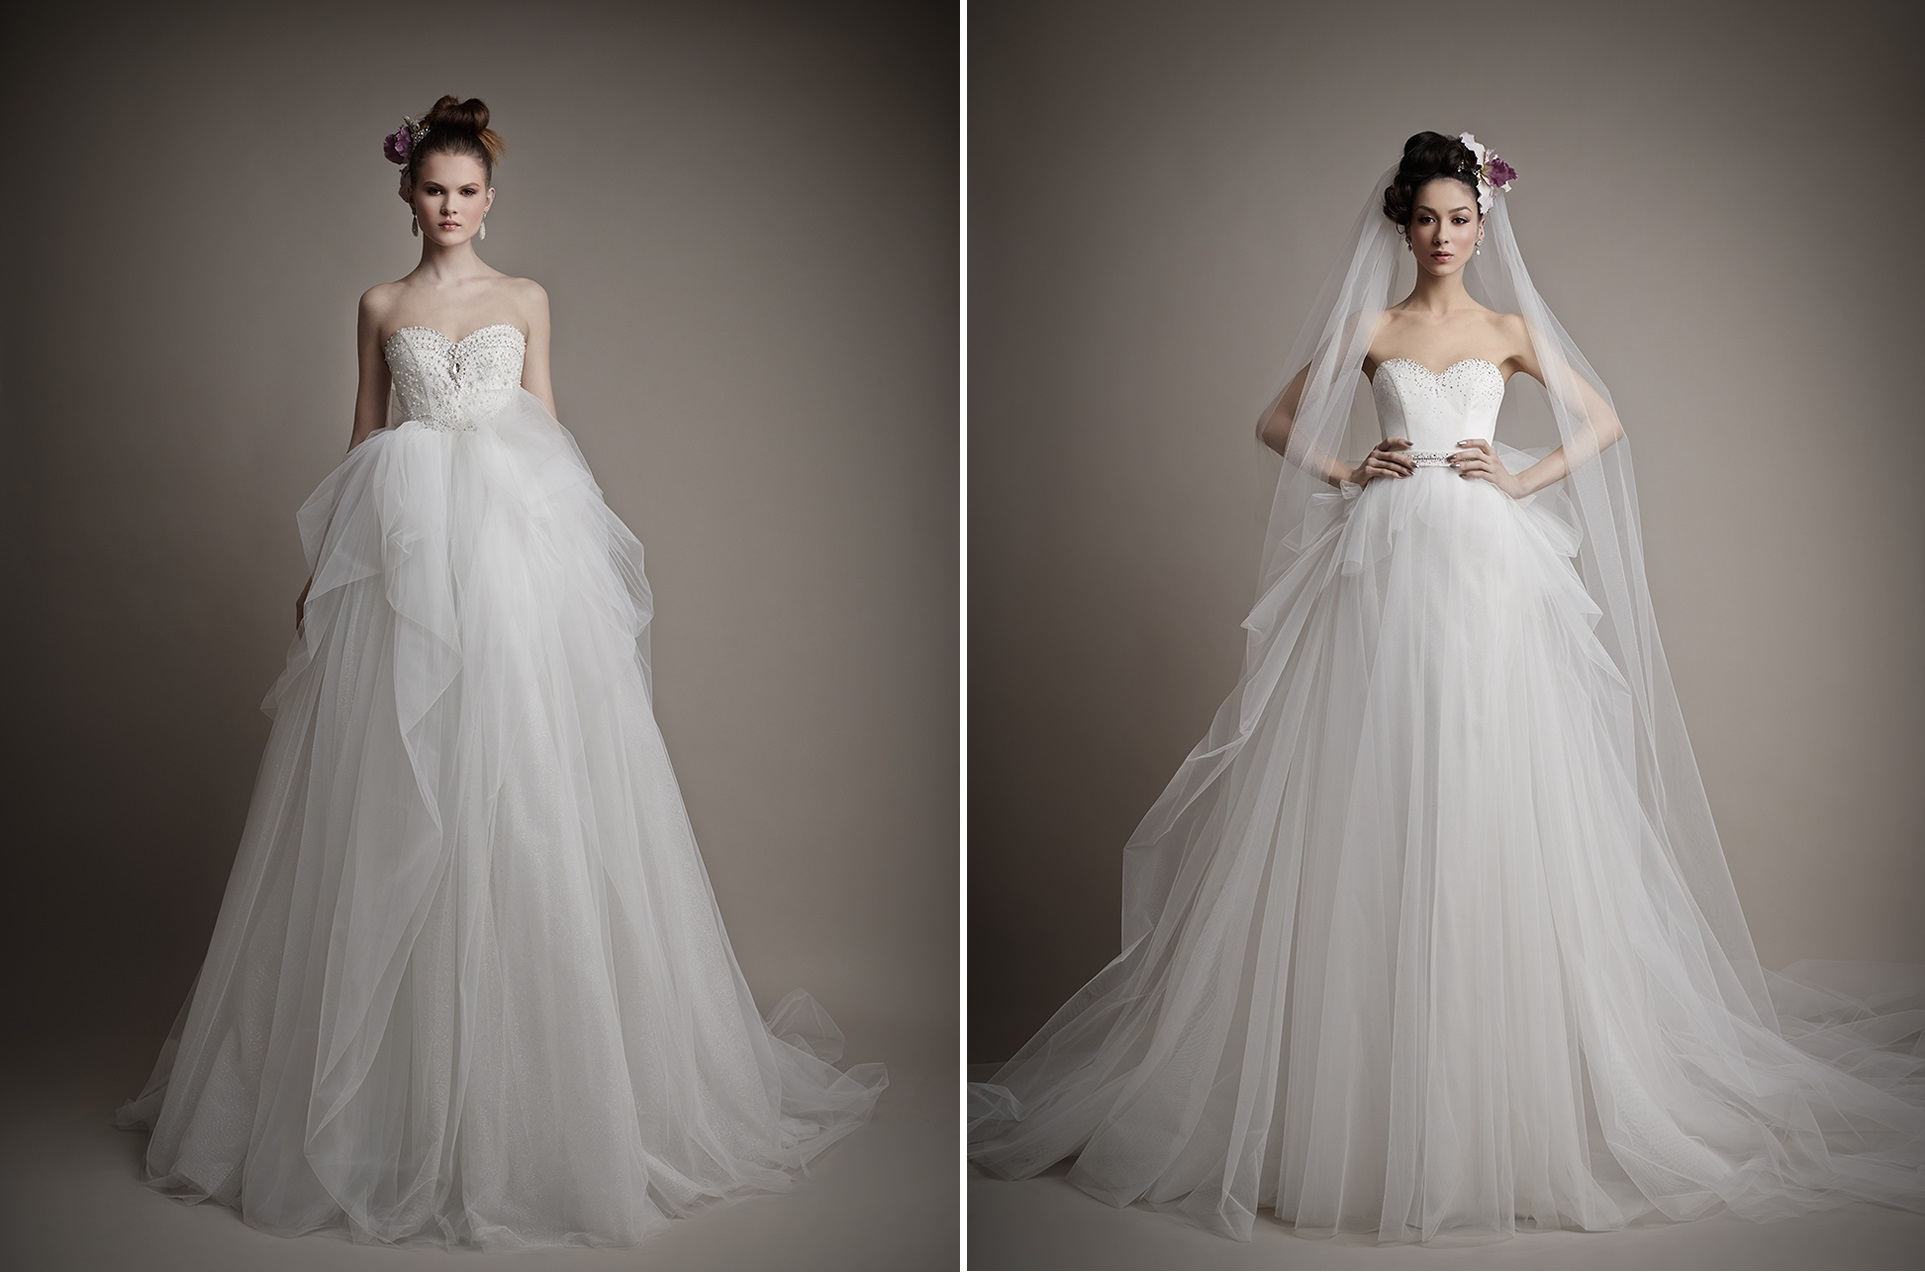 Ersa Atelier's 2015 Wedding Dress Collection